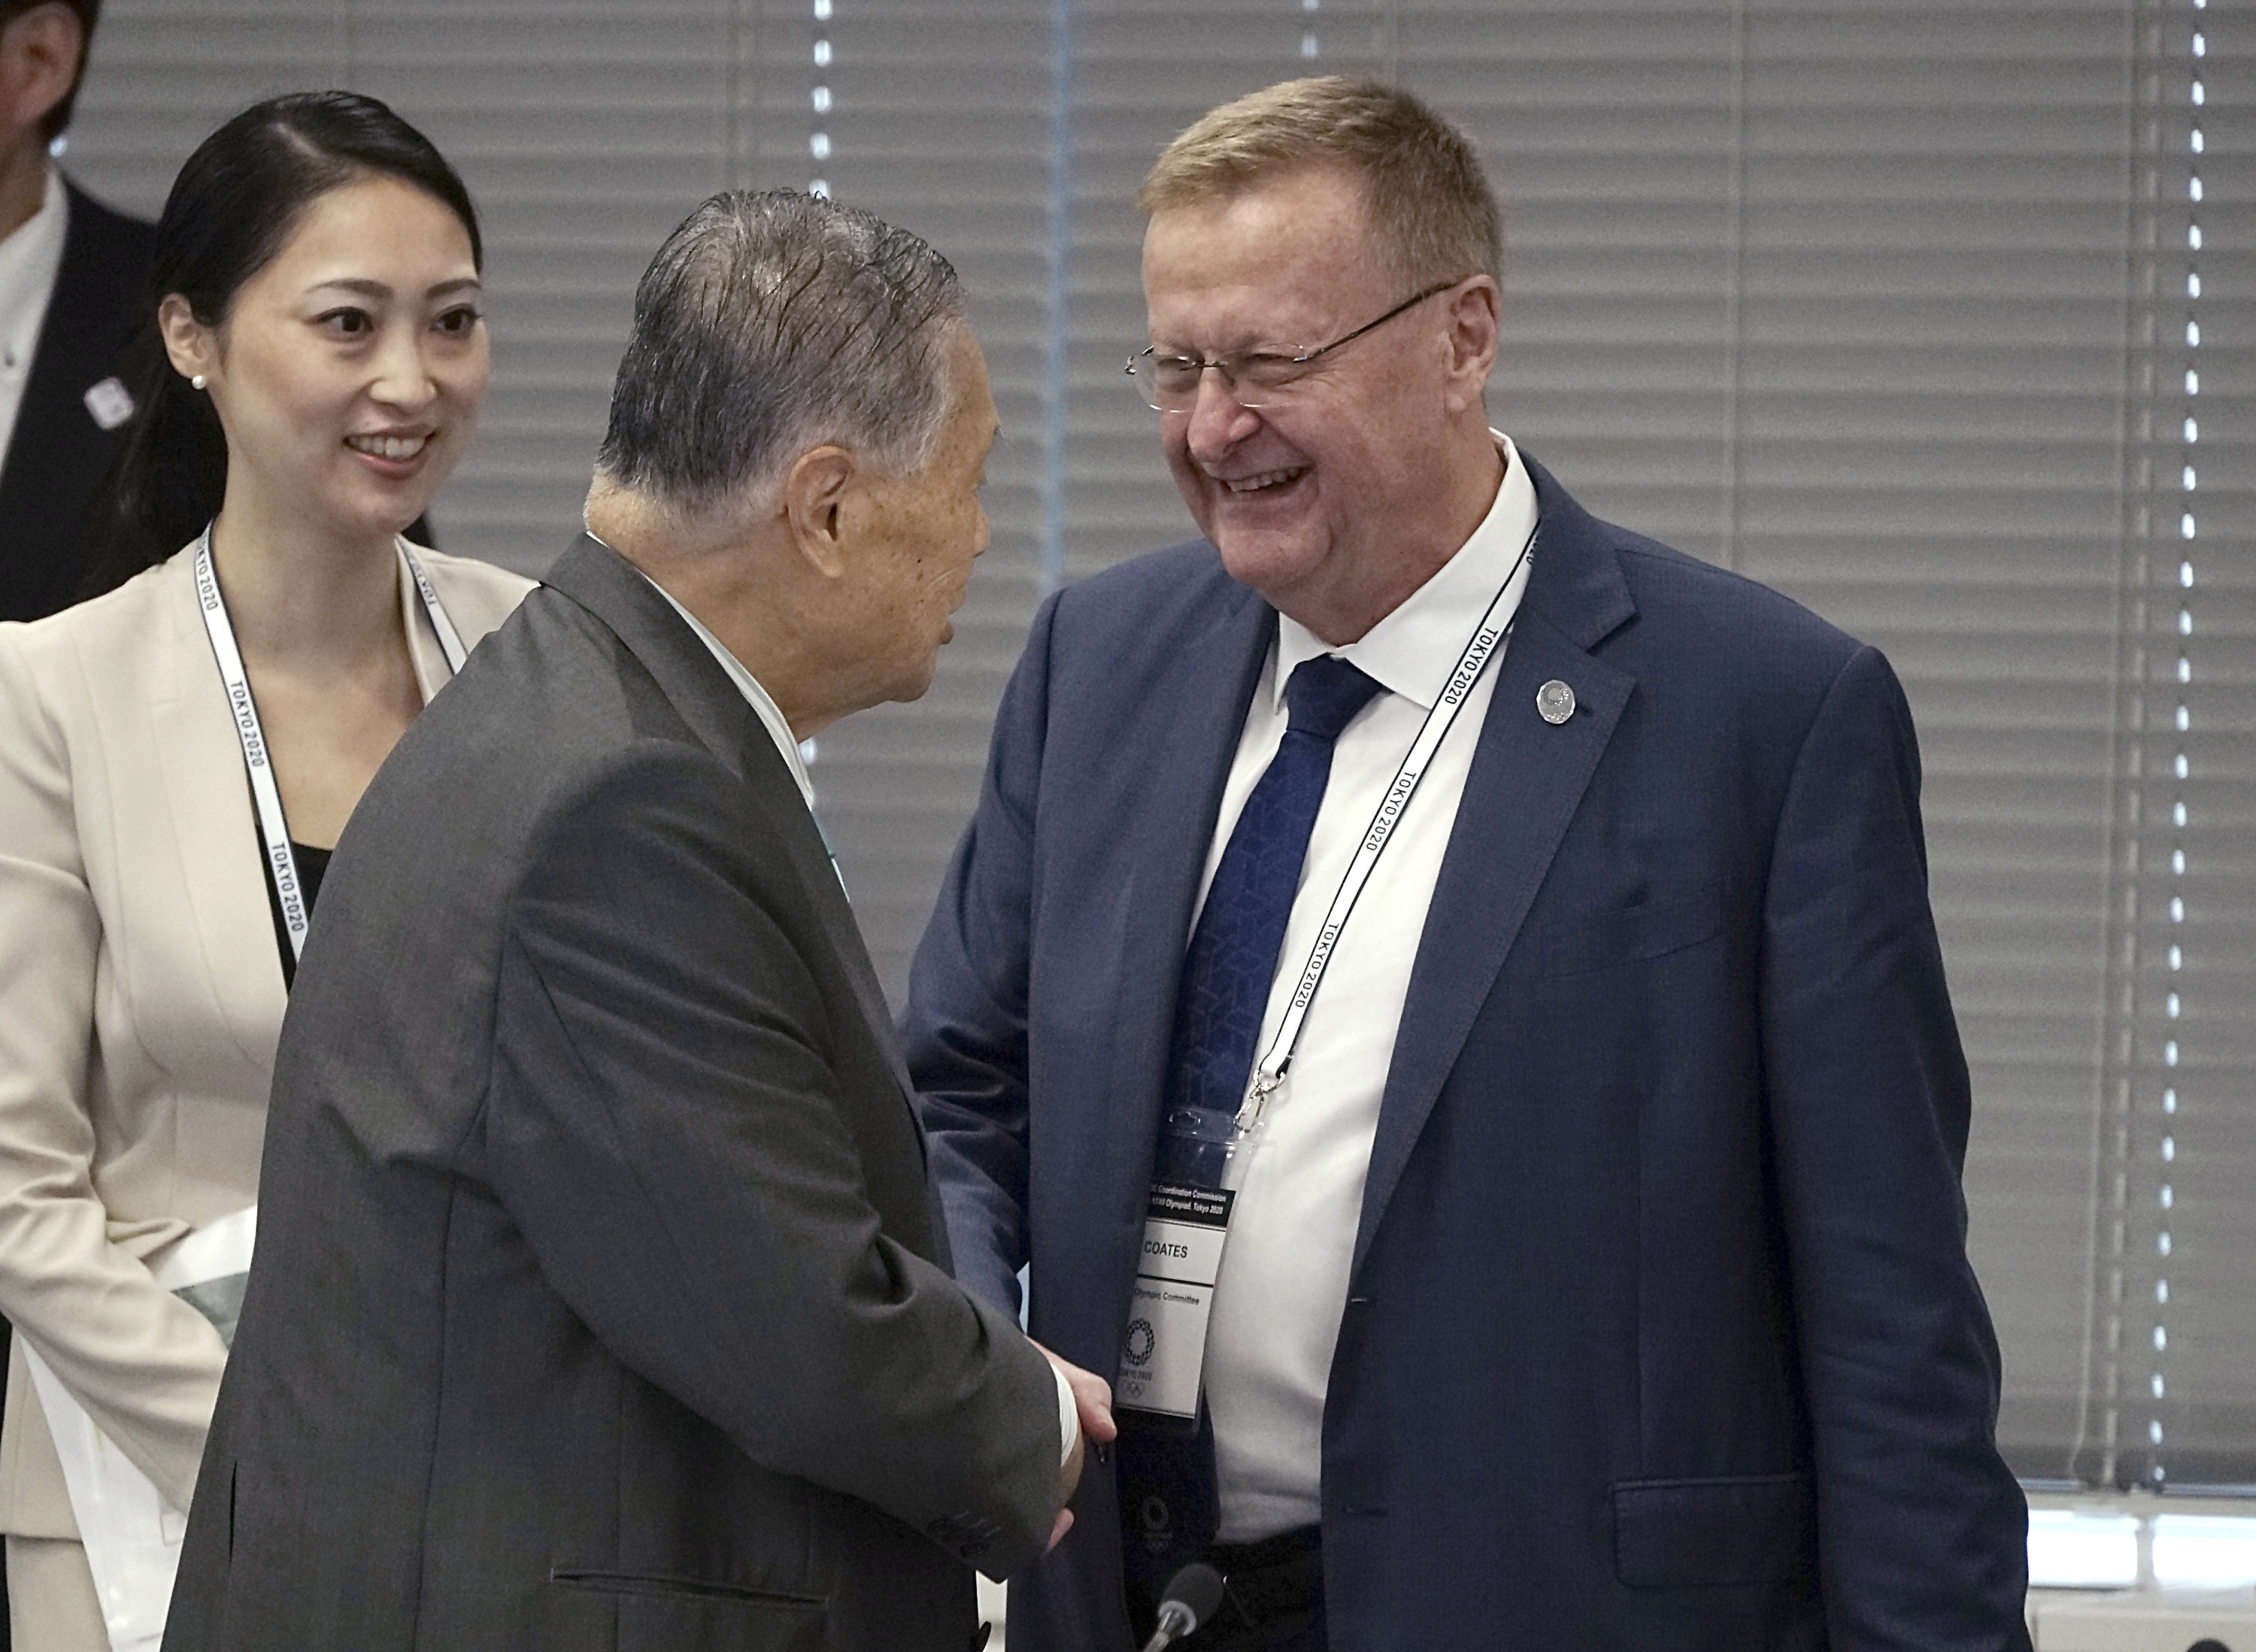 International Olympic Committee (IOC) Vice President John Coates, right, and Tokyo 2020 Olympics President Yoshiro Mori, center, shake hands prior to the IOC Coordination Commission opening plenary for the Olympic Games Tokyo 2020 in Tokyo Wednesday, June